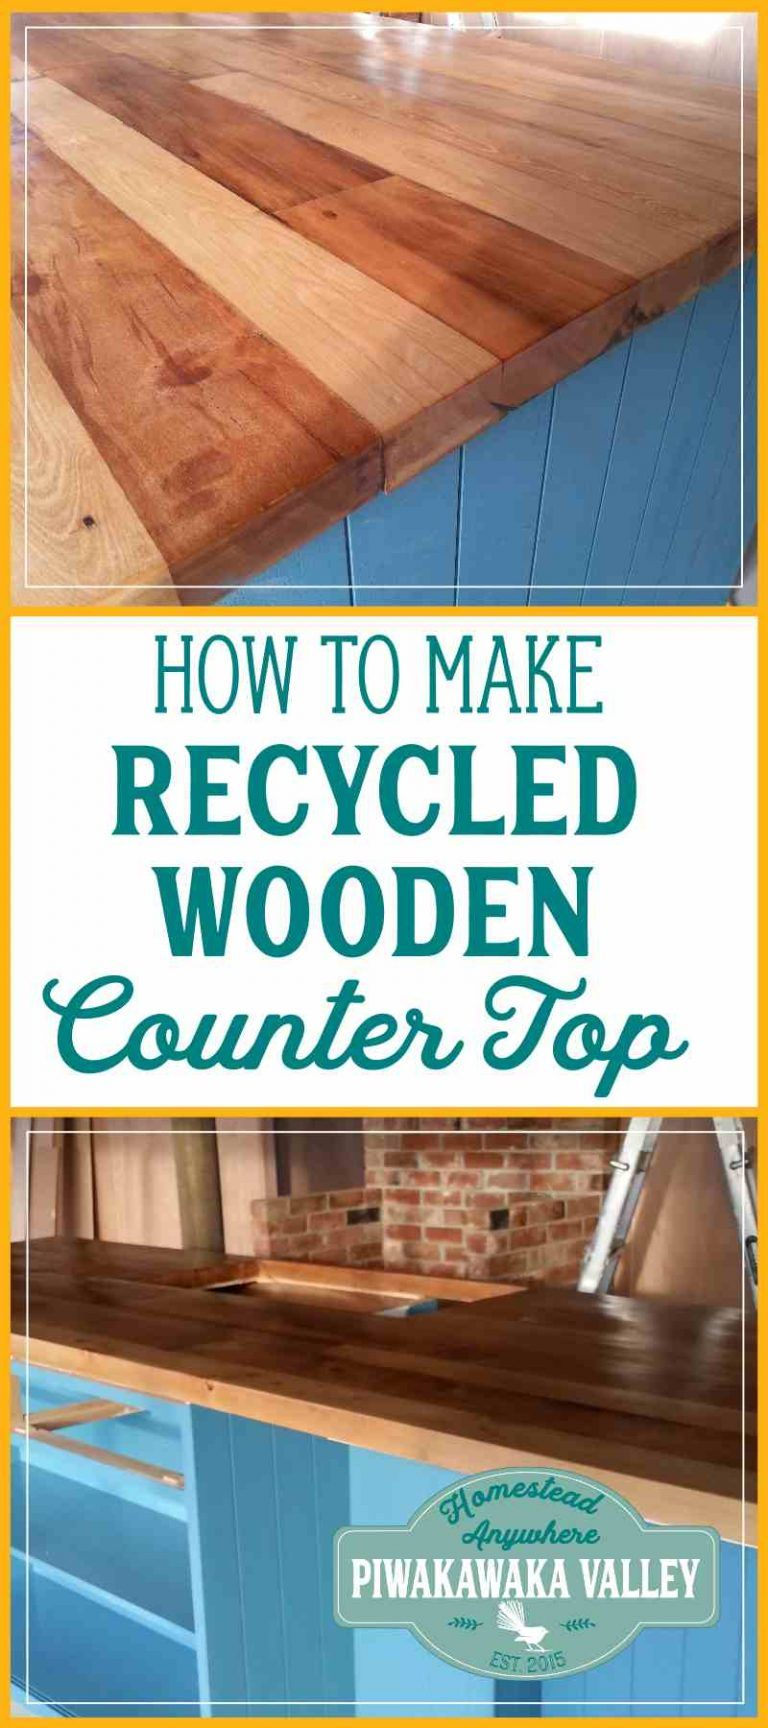 DIY Recycled Wooden Countertop | House ideas | Pinterest | DIY ...